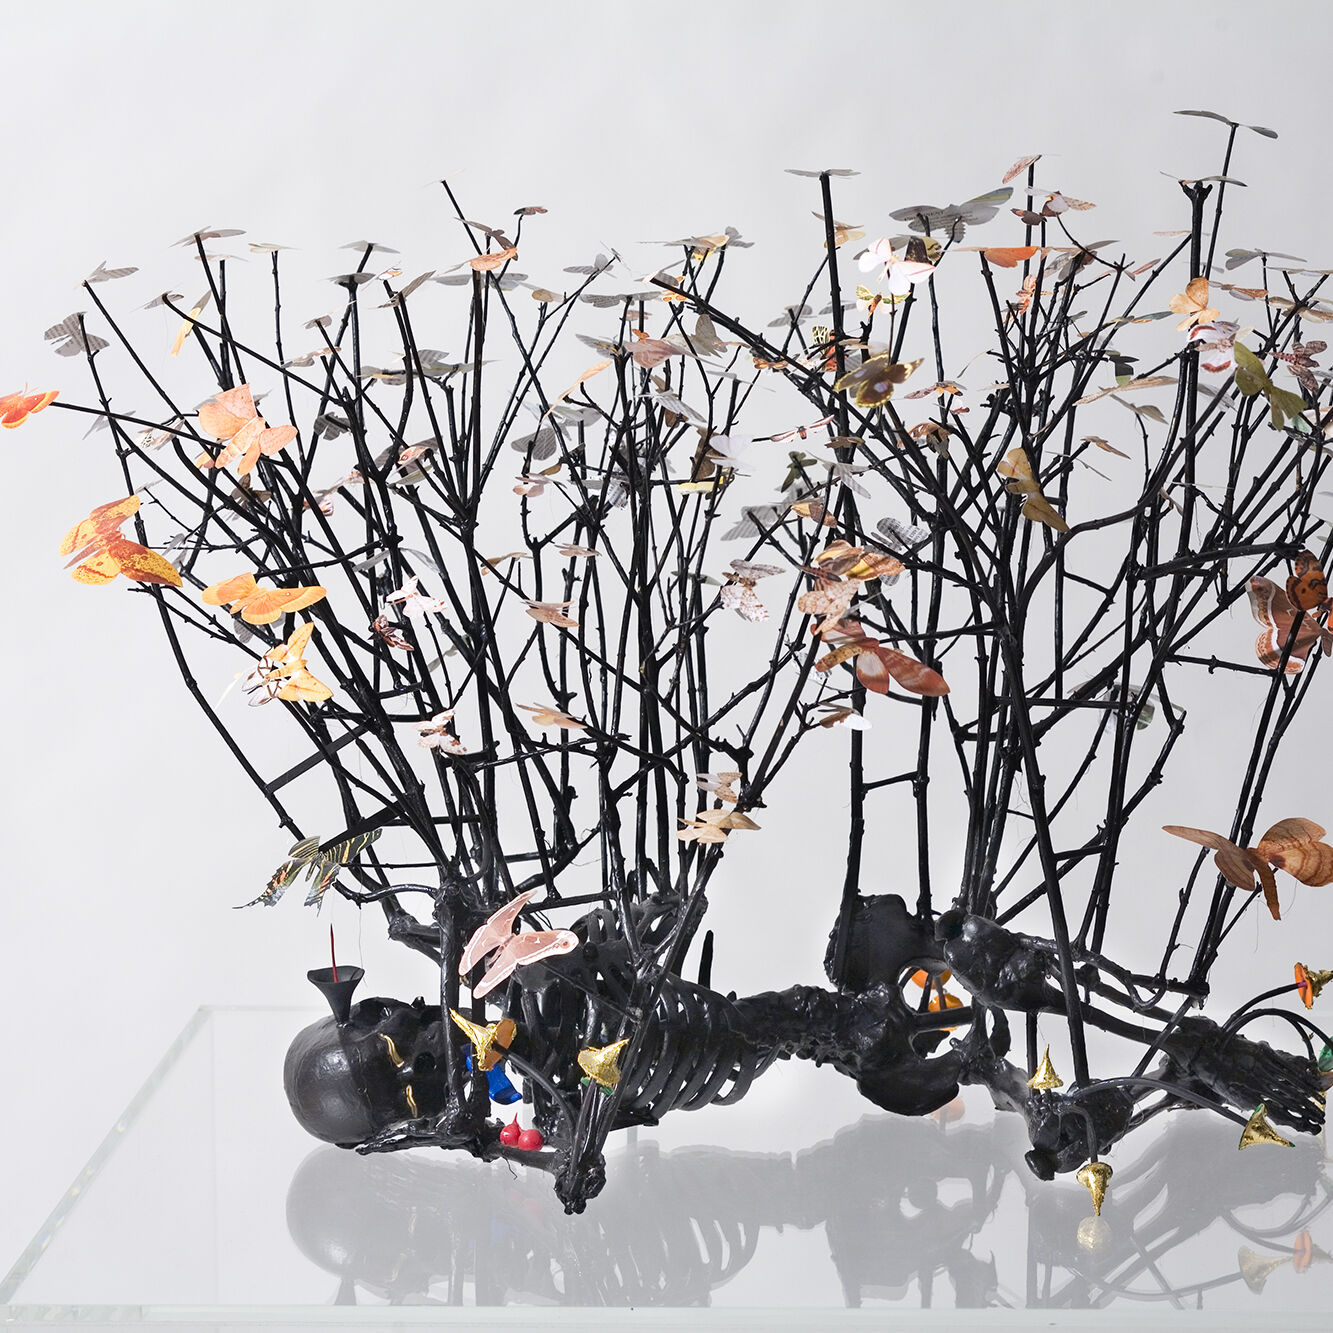 Peter MADDEN Sleep with Moths II 2008 Mixed media 58 x 76 x 66cm Collection Gippsland Art Gallery Donated by Janie Michell through the Australian Government Cultural Gifts Program